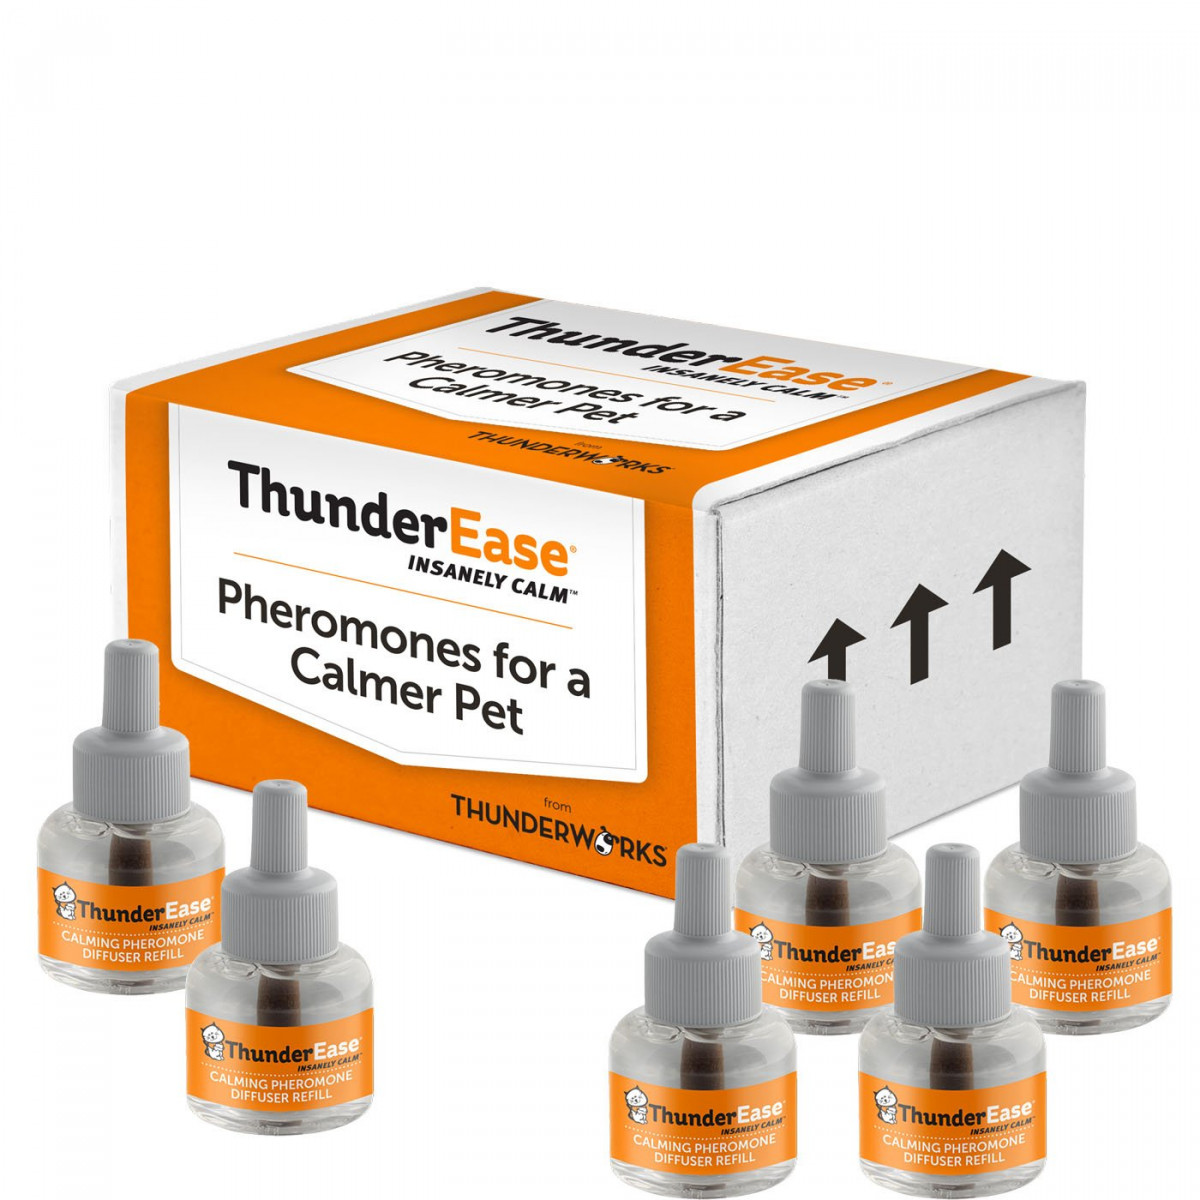 ThunderEase Cat Calming Pheromone Diffuser Refill - Reduce Scratching,  Urine Spraying, Marking, and Anxiety